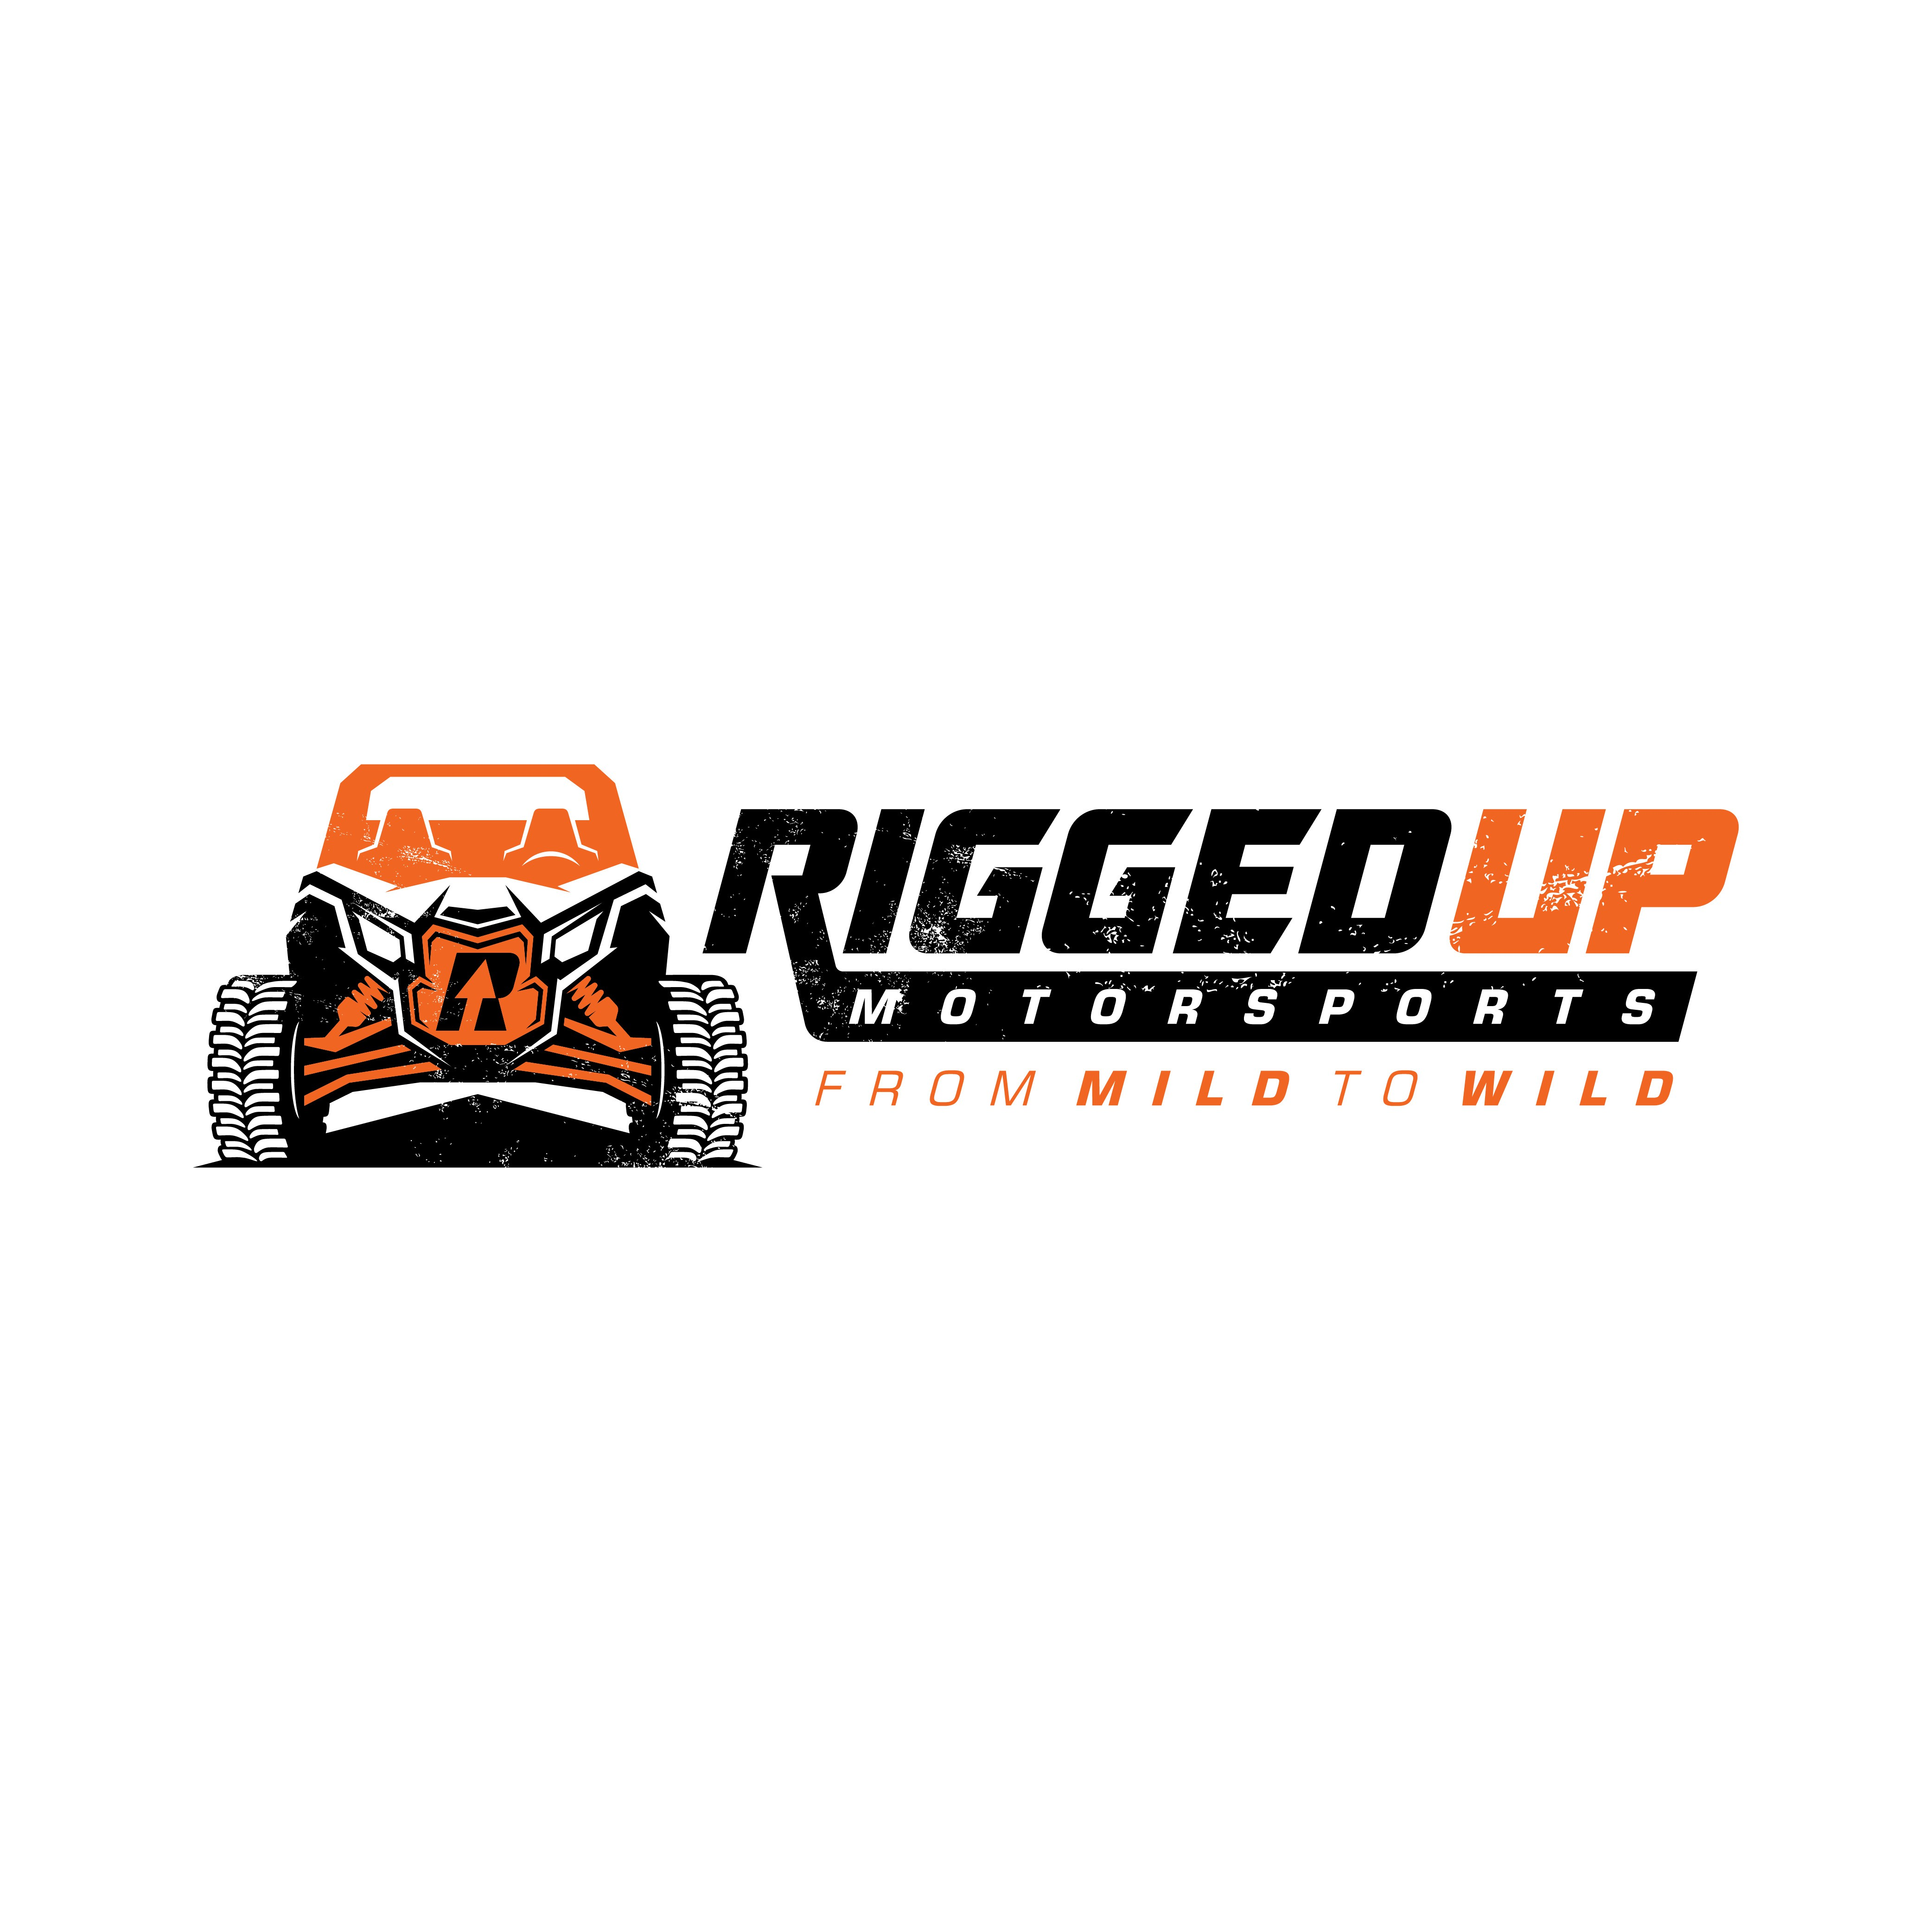 New business for an awesome Motorsports company